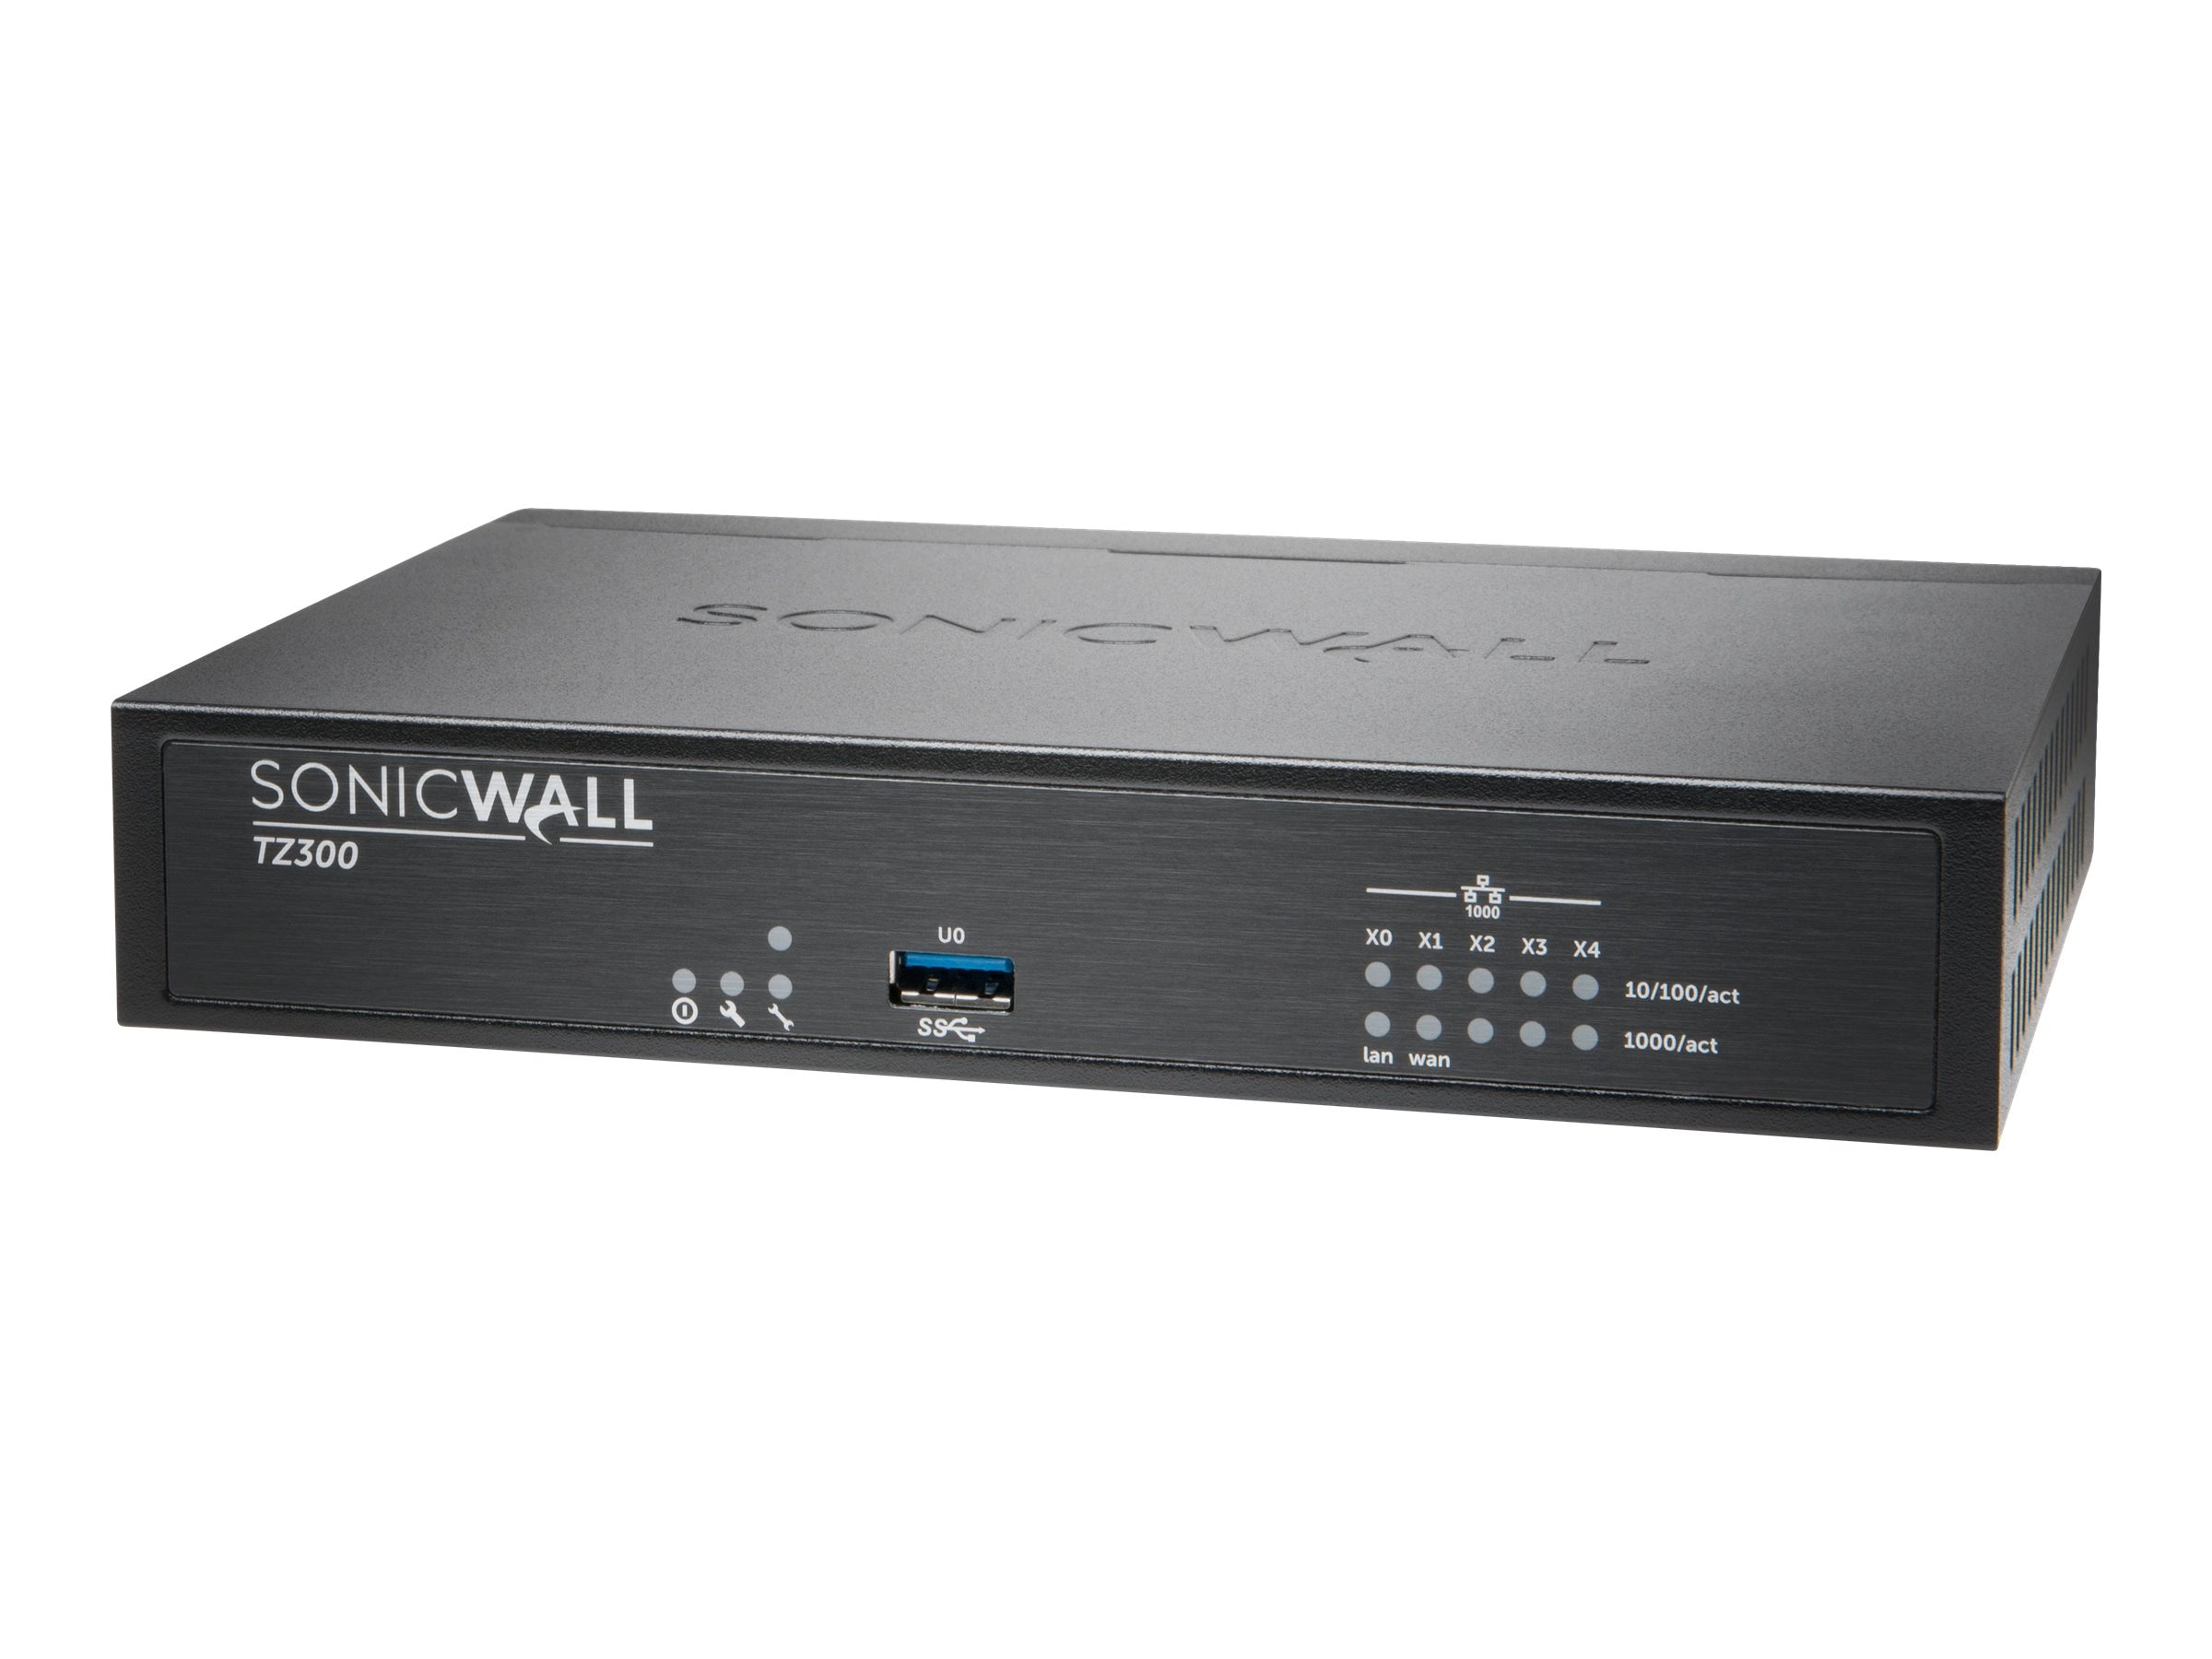 SonicWALL 01-SSC-0575 Image 1